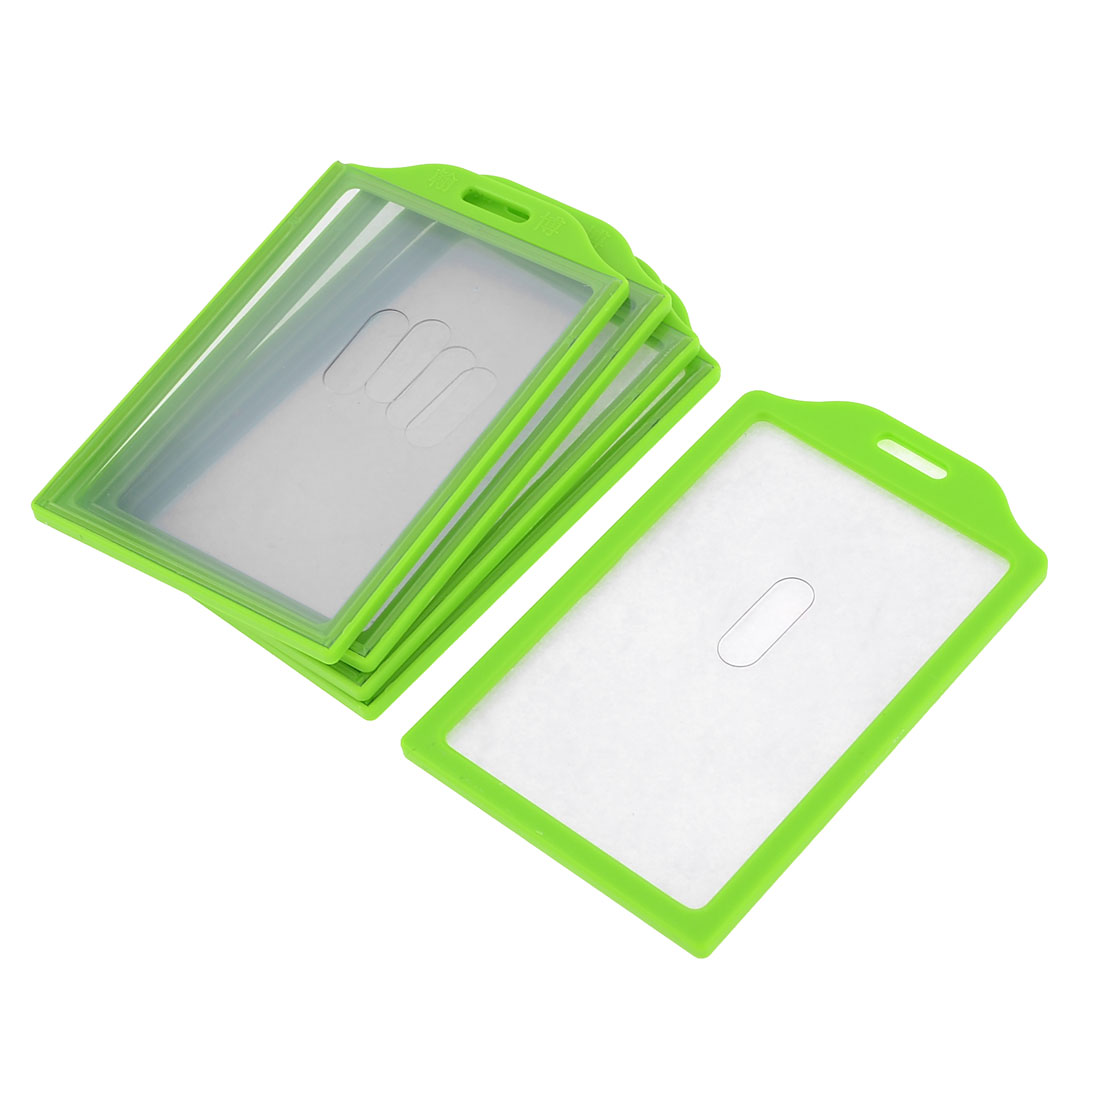 5pcs Grass Green Plastic Frame Vertical School Slide ID Card Holder 91mm x 59mm